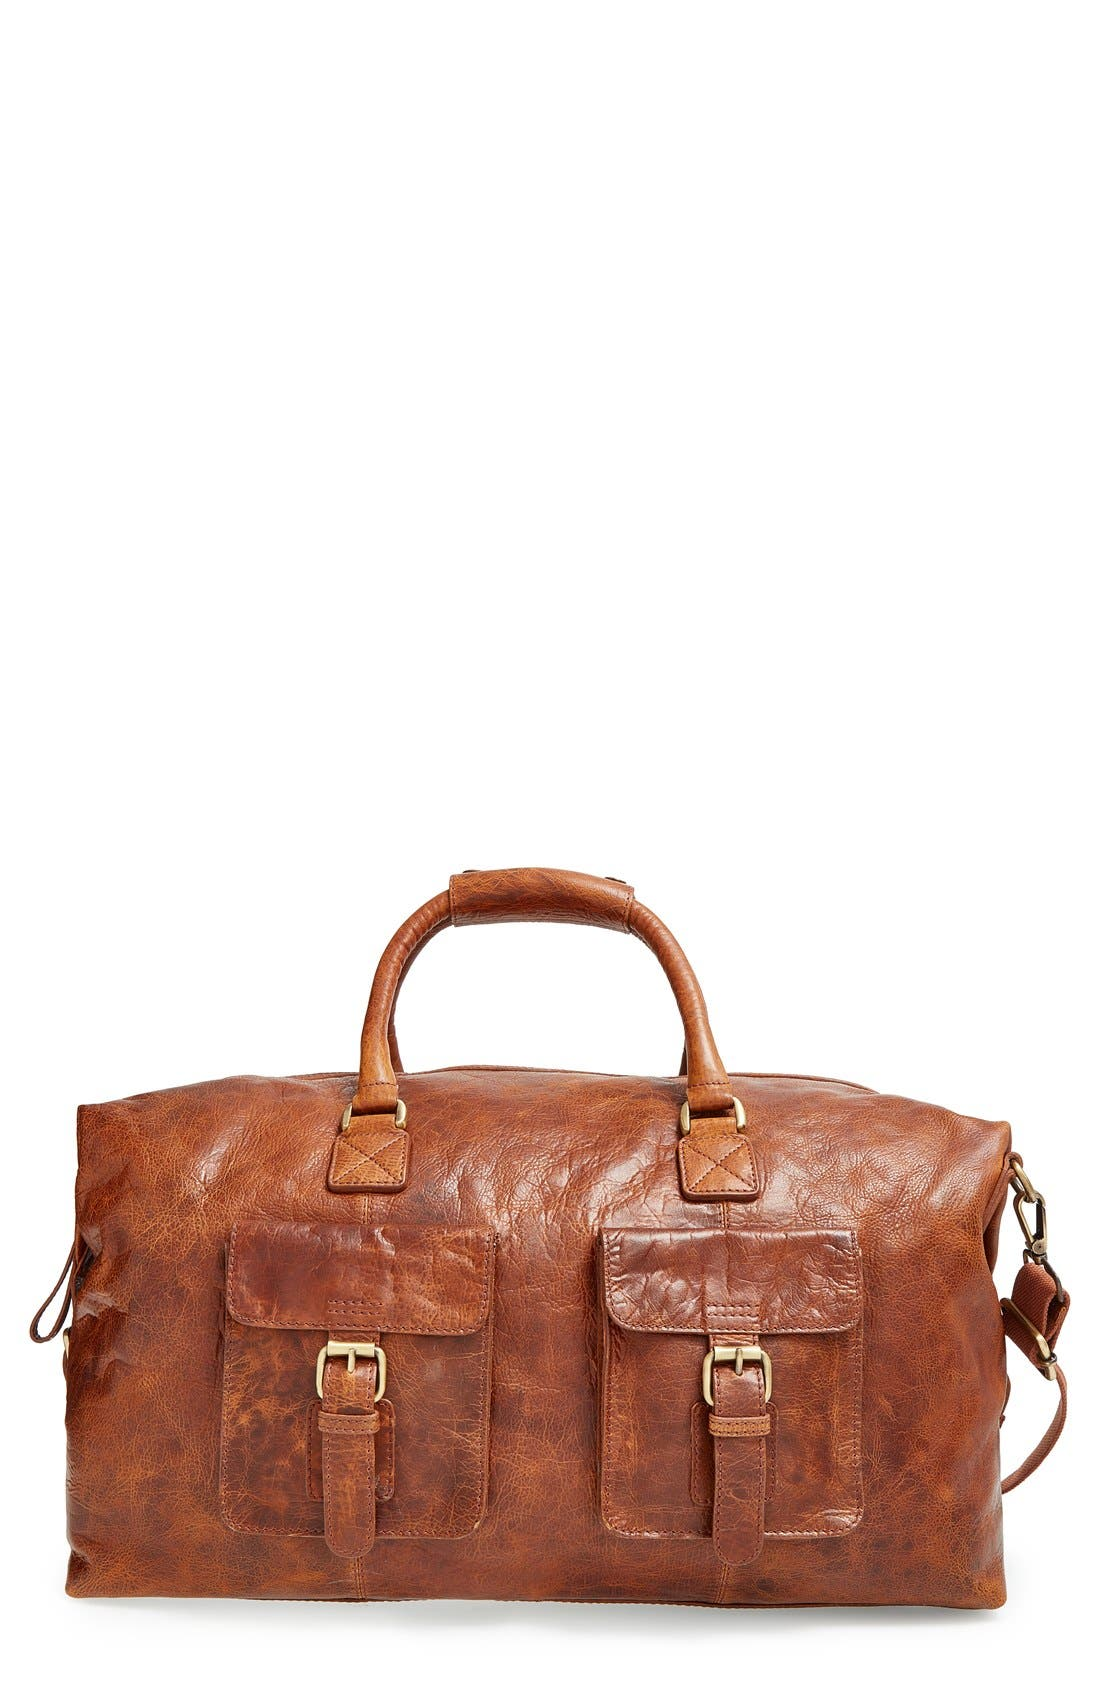 'Rugged' Leather Duffel Bag,                             Main thumbnail 1, color,                             Cognac